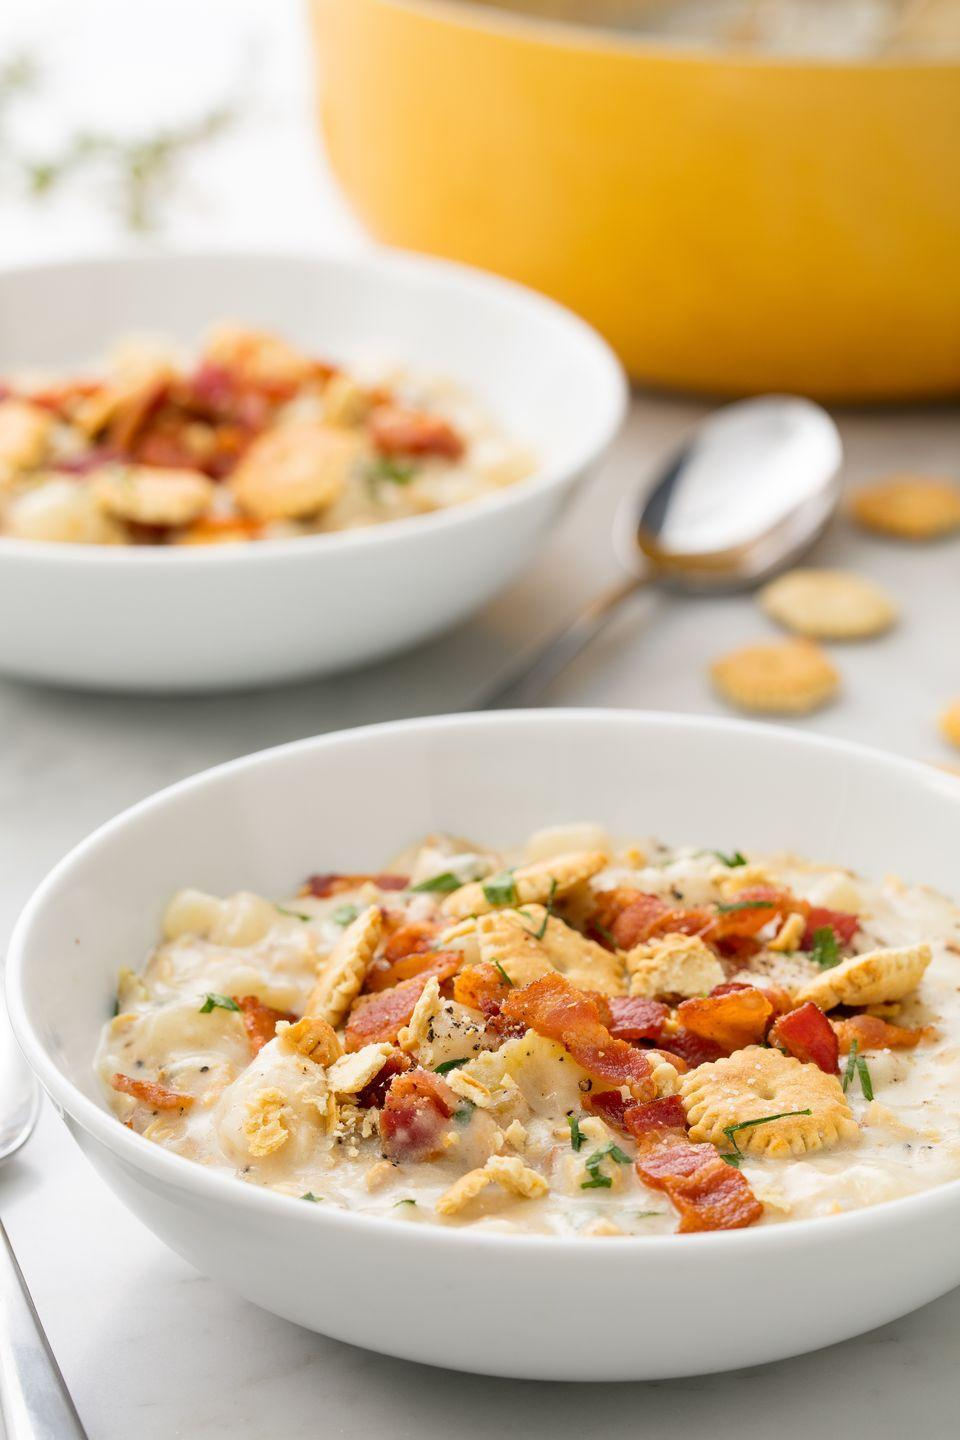 "<p>Dream of the seaside when it's too cold to deal.</p><p>Get the recipe from <a href=""https://www.delish.com/cooking/recipe-ideas/recipes/a54466/easy-new-england-clam-chowder-recipe/"" rel=""nofollow noopener"" target=""_blank"" data-ylk=""slk:Delish"" class=""link rapid-noclick-resp"">Delish</a>.</p><p><a class=""link rapid-noclick-resp"" href=""https://go.redirectingat.com?id=74968X1596630&url=http%3A%2F%2Fwww.booksamillion.com%2Fp%2FDelish%2FEditors-Delish%2F9781328498861%3FAID%3D12534396%26PID%3D7689440%26SID%3D74968X1525073Xd3f4558dac2bf3f14278e5e58fd08bb1&sref=https%3A%2F%2Fwww.delish.com%2Fcooking%2Fg1829%2Fwinter-soup%2F"" rel=""nofollow noopener"" target=""_blank"" data-ylk=""slk:BUY NOW"">BUY NOW</a><strong><em> Delish cookbook, booksamillion.com</em></strong></p>"